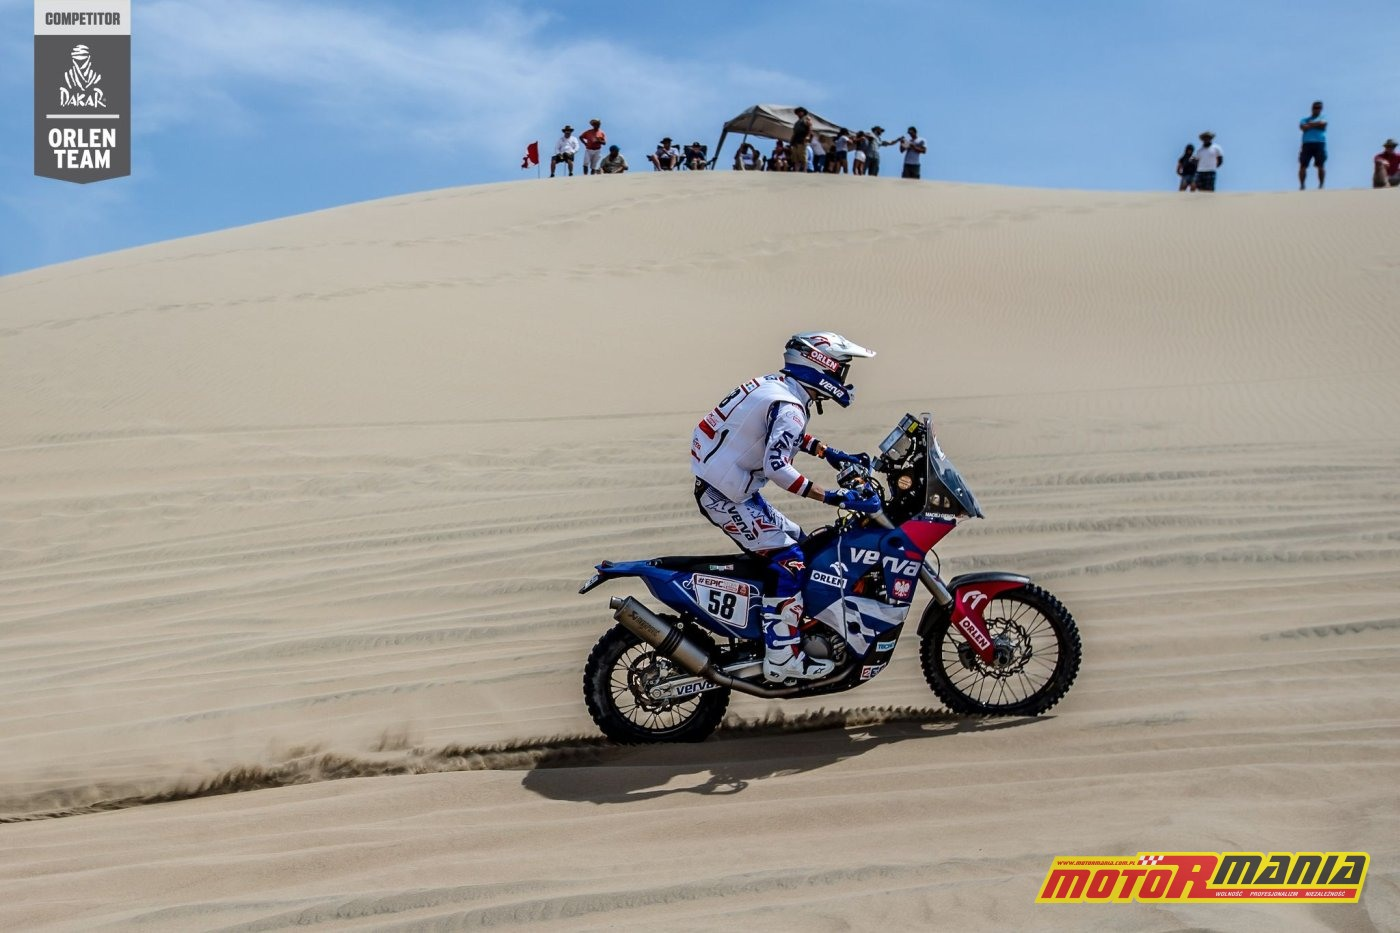 Dakar2018 D01 ORLEN_Team Giemza_7 MCH_Photo_OT